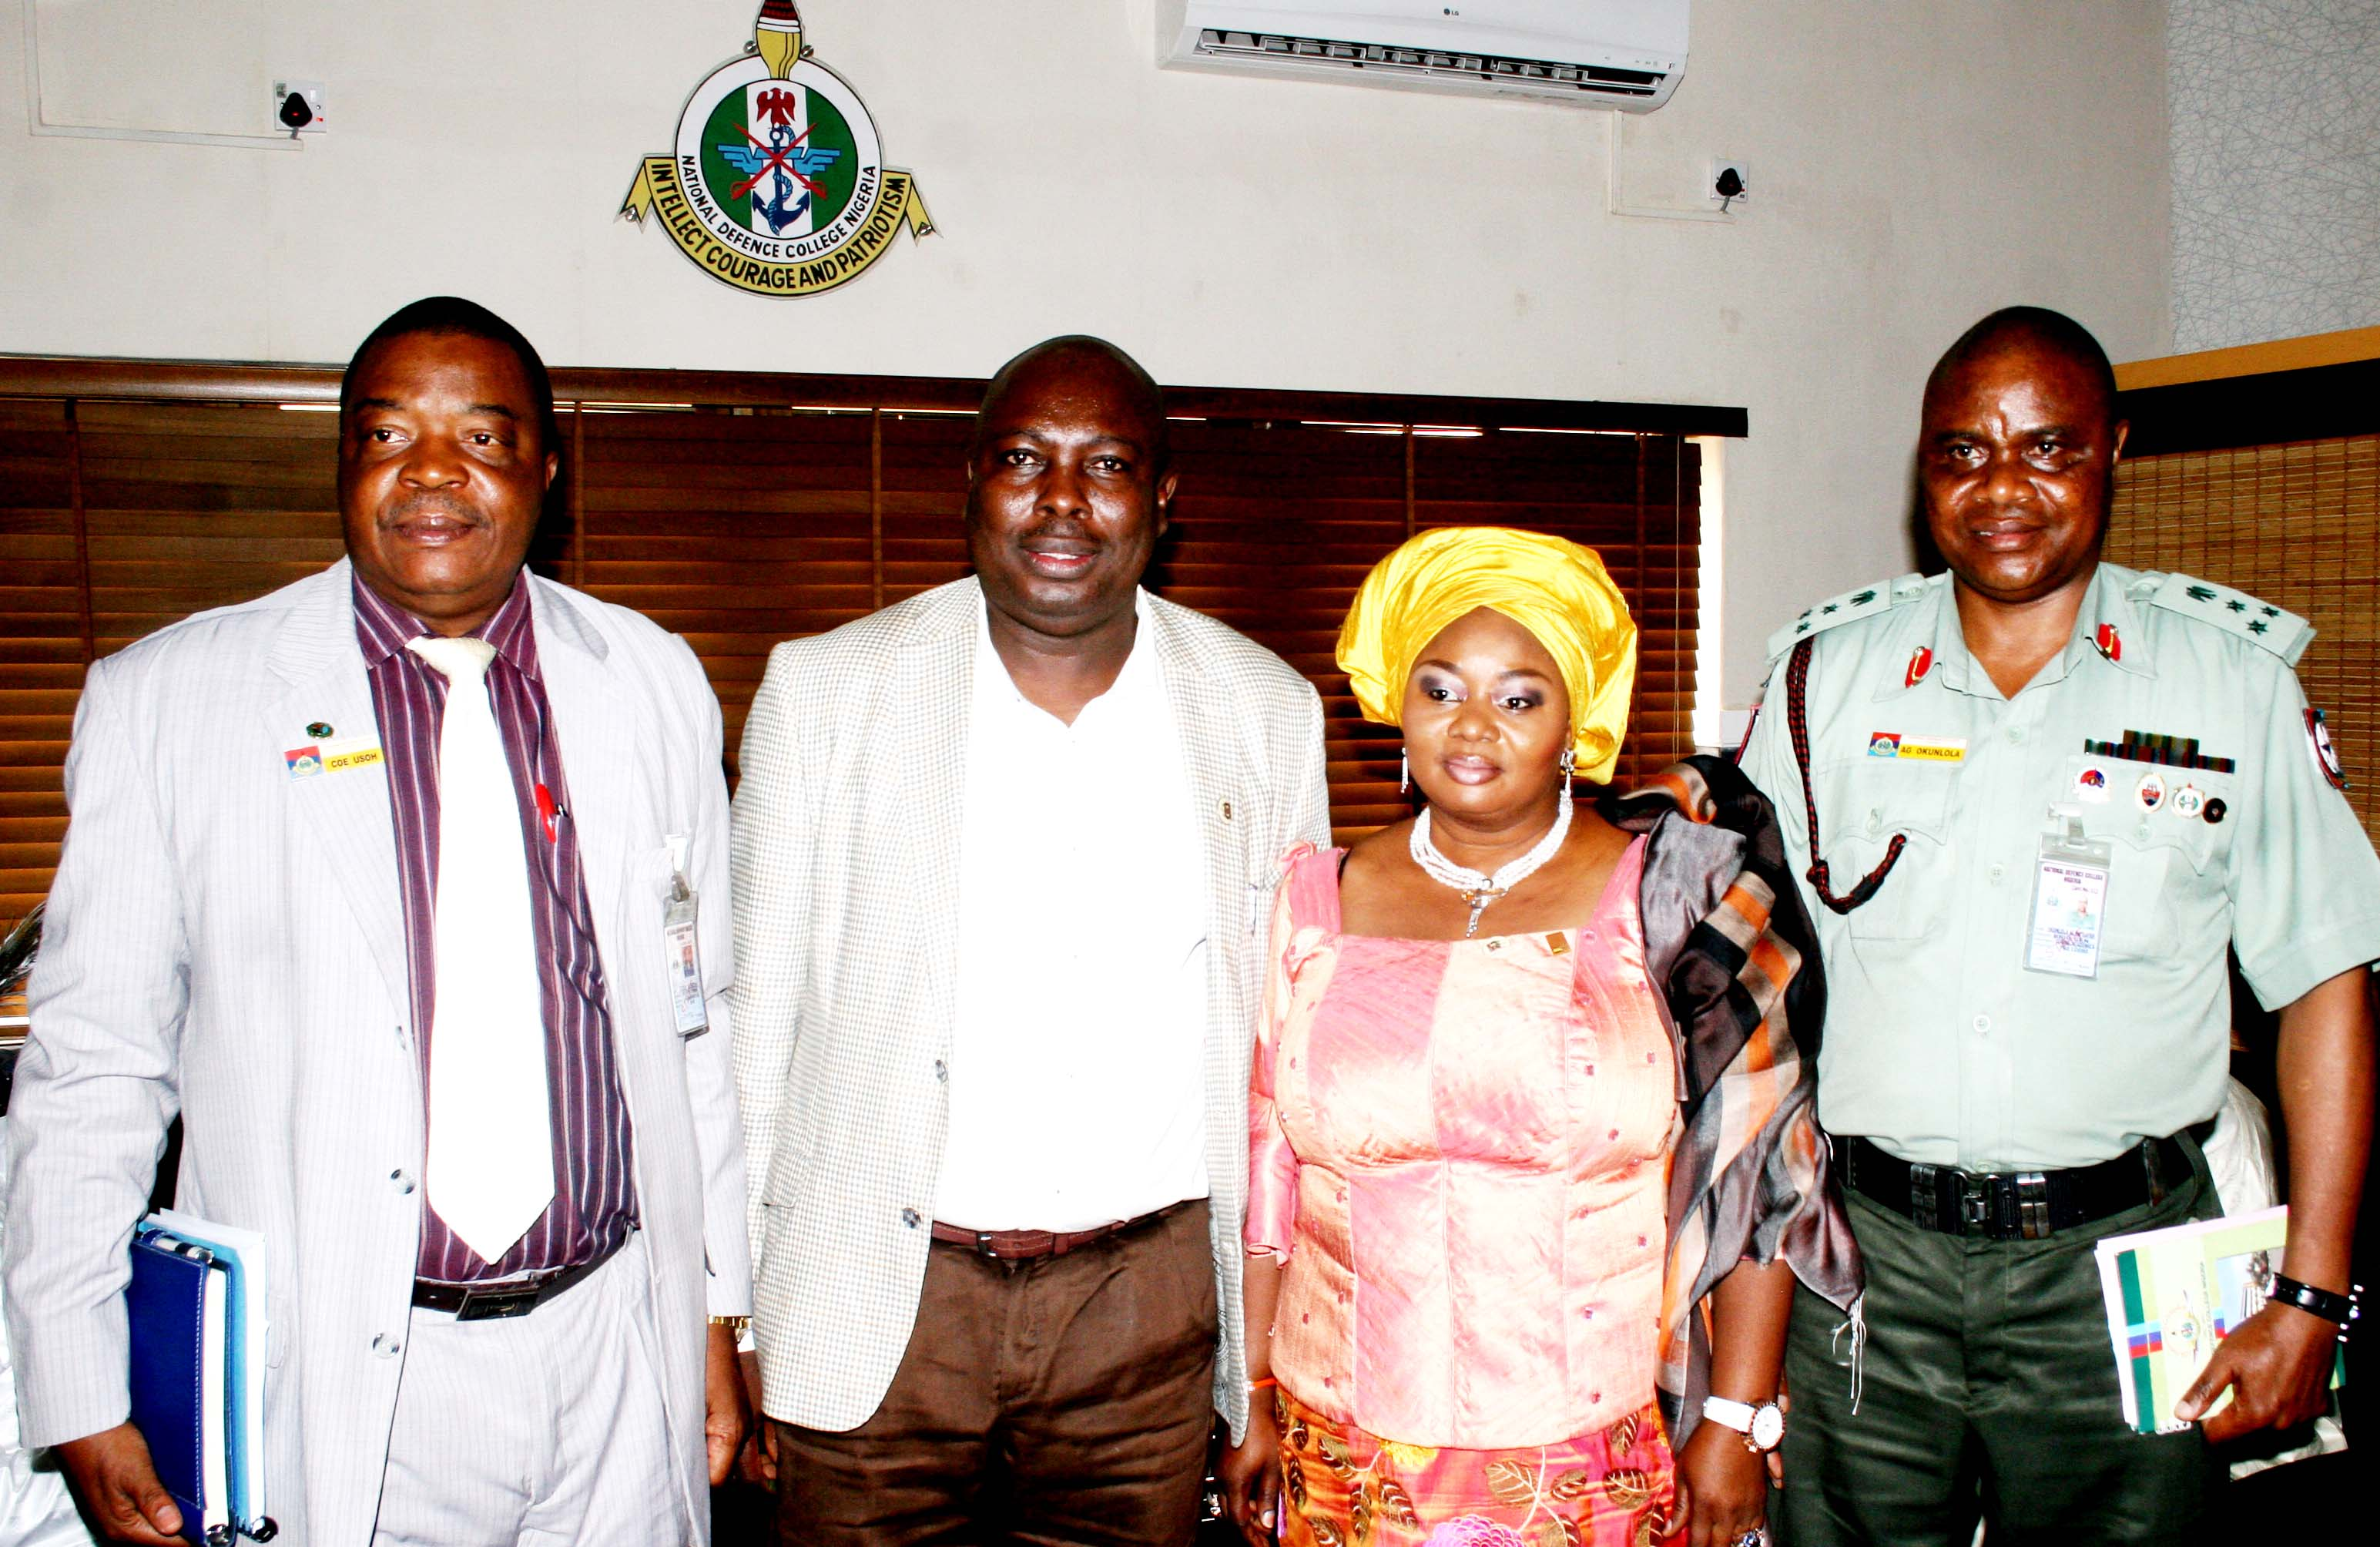 From  Left .National Defence College, Abuja Course 22 participants Presentation Team Coordinator;Air Commodore Charles Usoh,Commissioner for Information and Strategic State Of Osun; Mr. Sunday Akere, Special Adviser To The Governor on Federal Matters, State of Osun; Hon Babalola Idia (representing the State Governor) and Presentation Team Leader; Brigadier General Alani Okunlola, during National Defence College, Abuja Course 22 Presentation of Geo- Strategic Tour of the State of Osun,  at the College Premises, Abuja on Tuesday 29-10-2013.